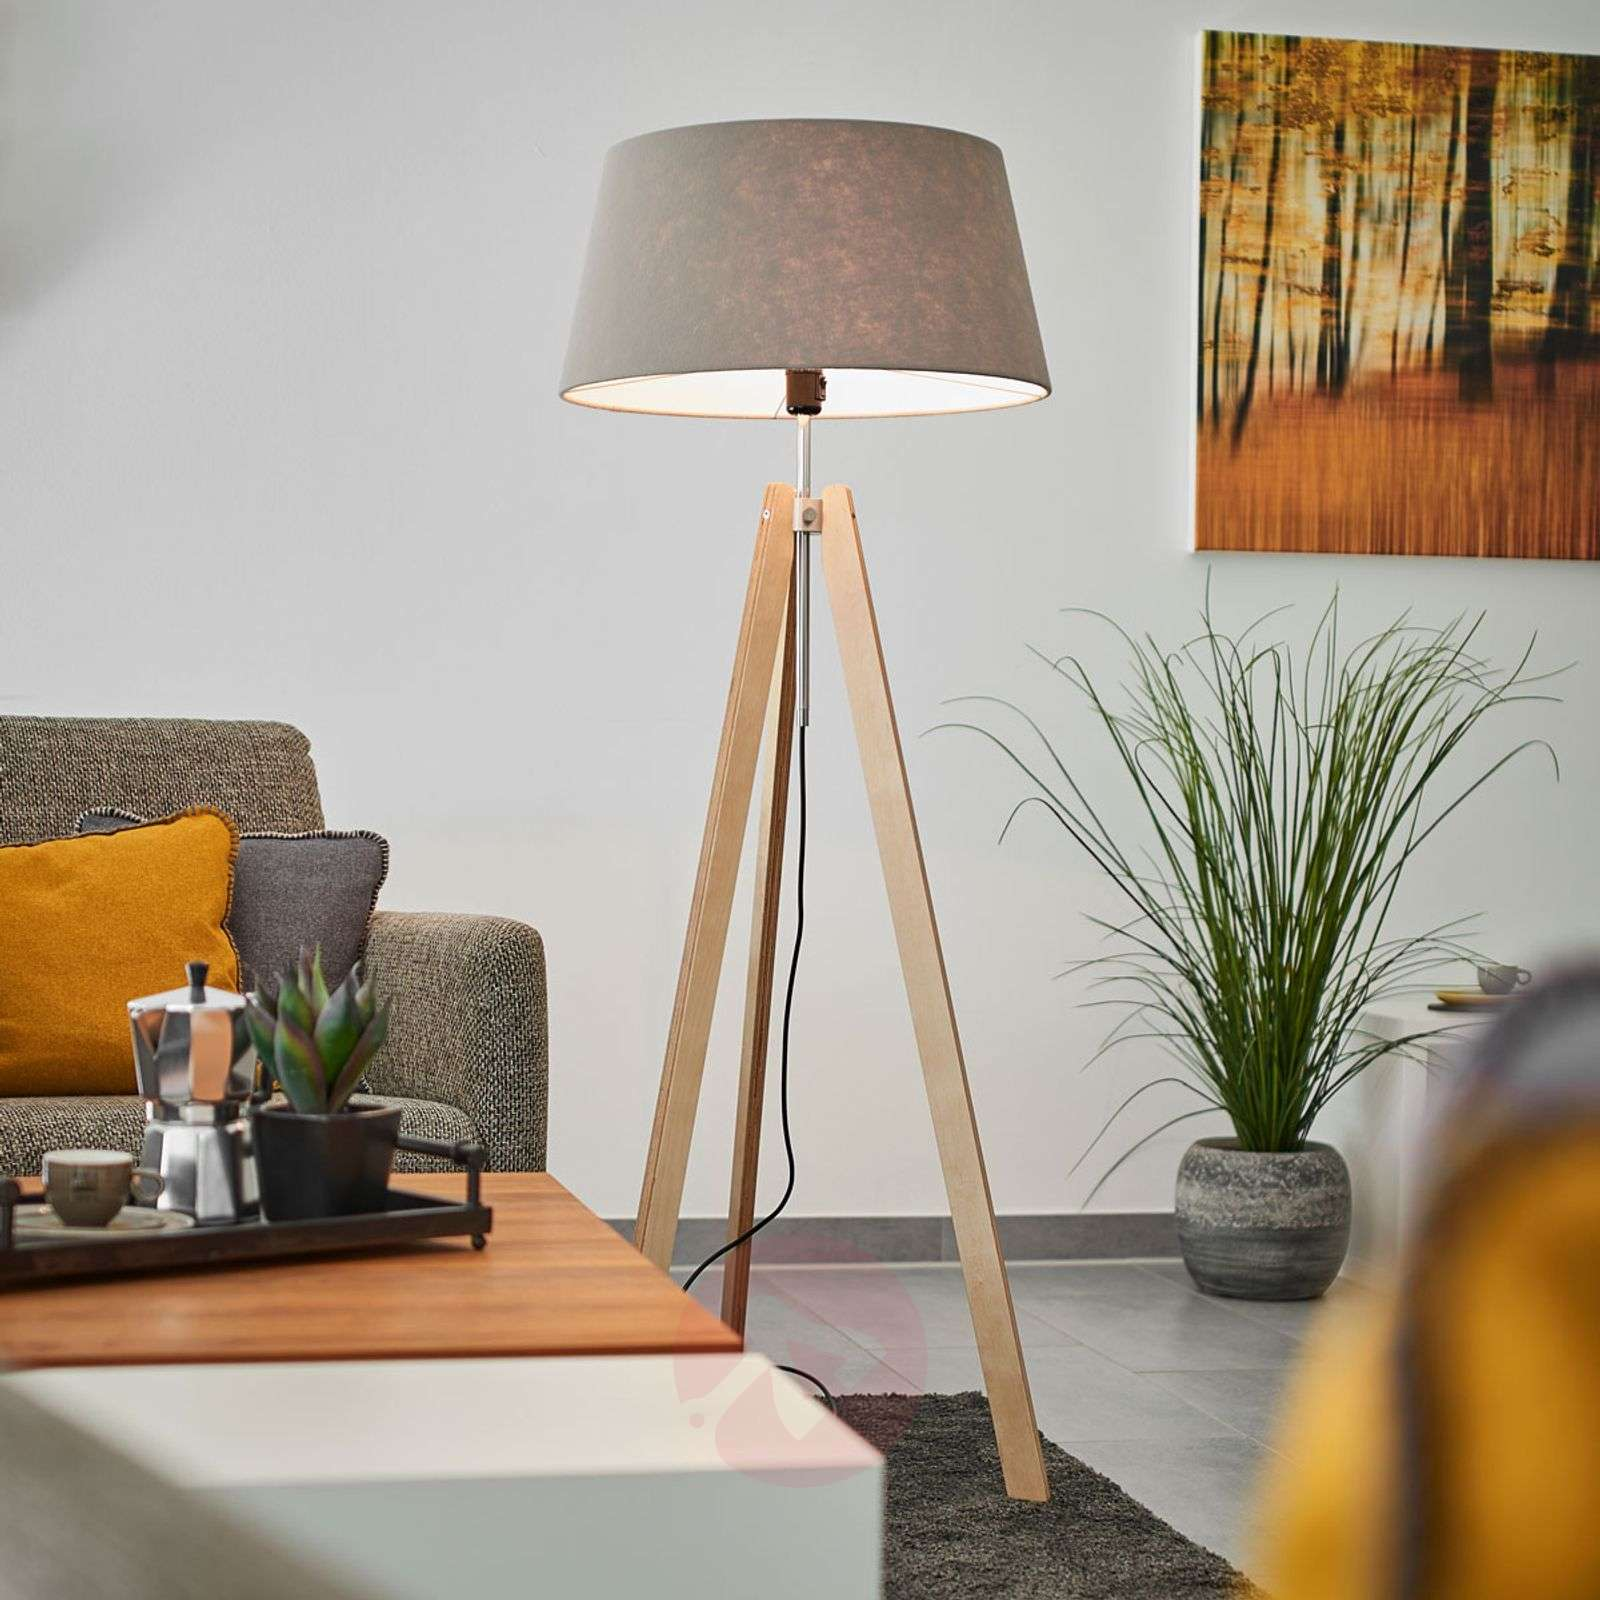 With grey felt lampshade - Thea wooden floor lamp | Lights